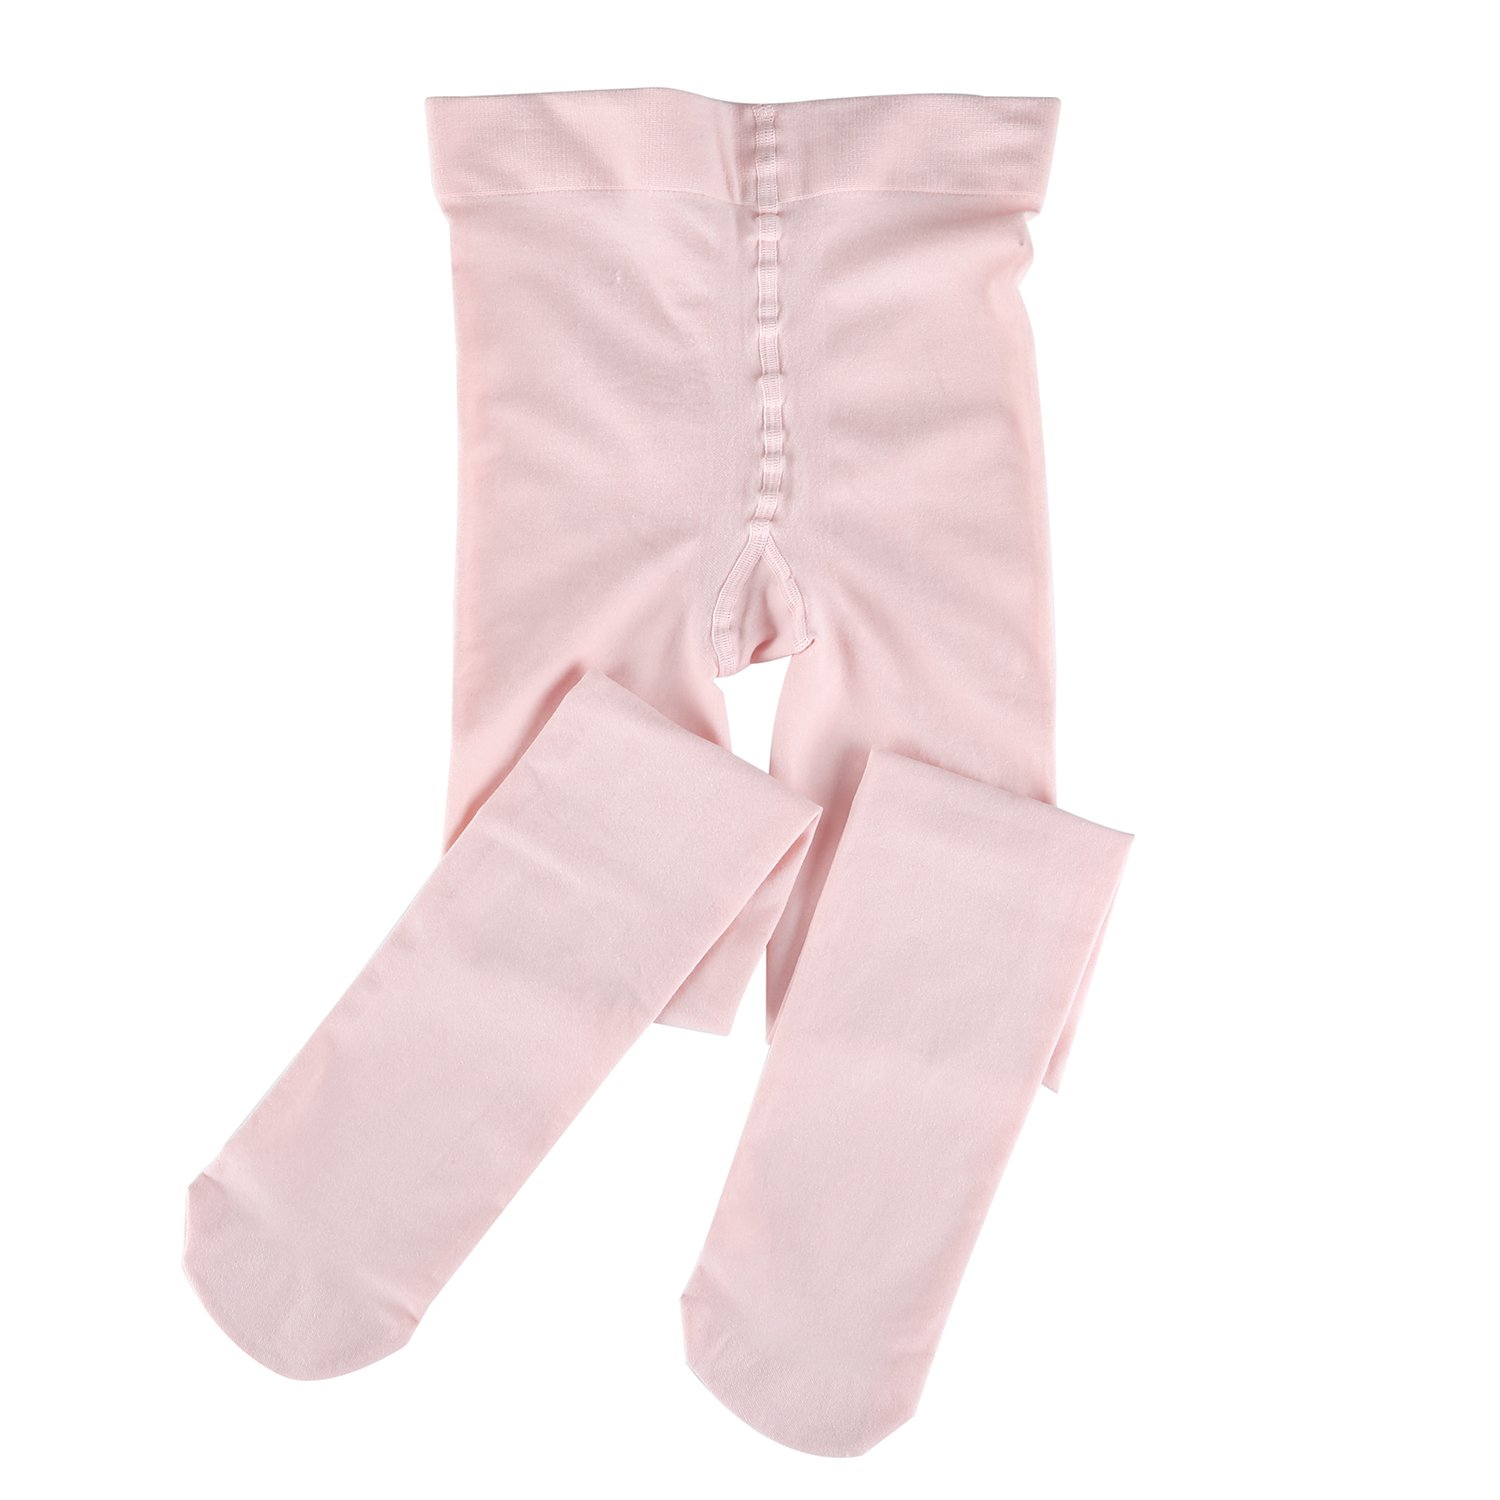 ca6139ffa243a Get Quotations · Swan Ultra Soft Ballet Dance Tights for Girls Toddlers/Little  Kids/Big Kids